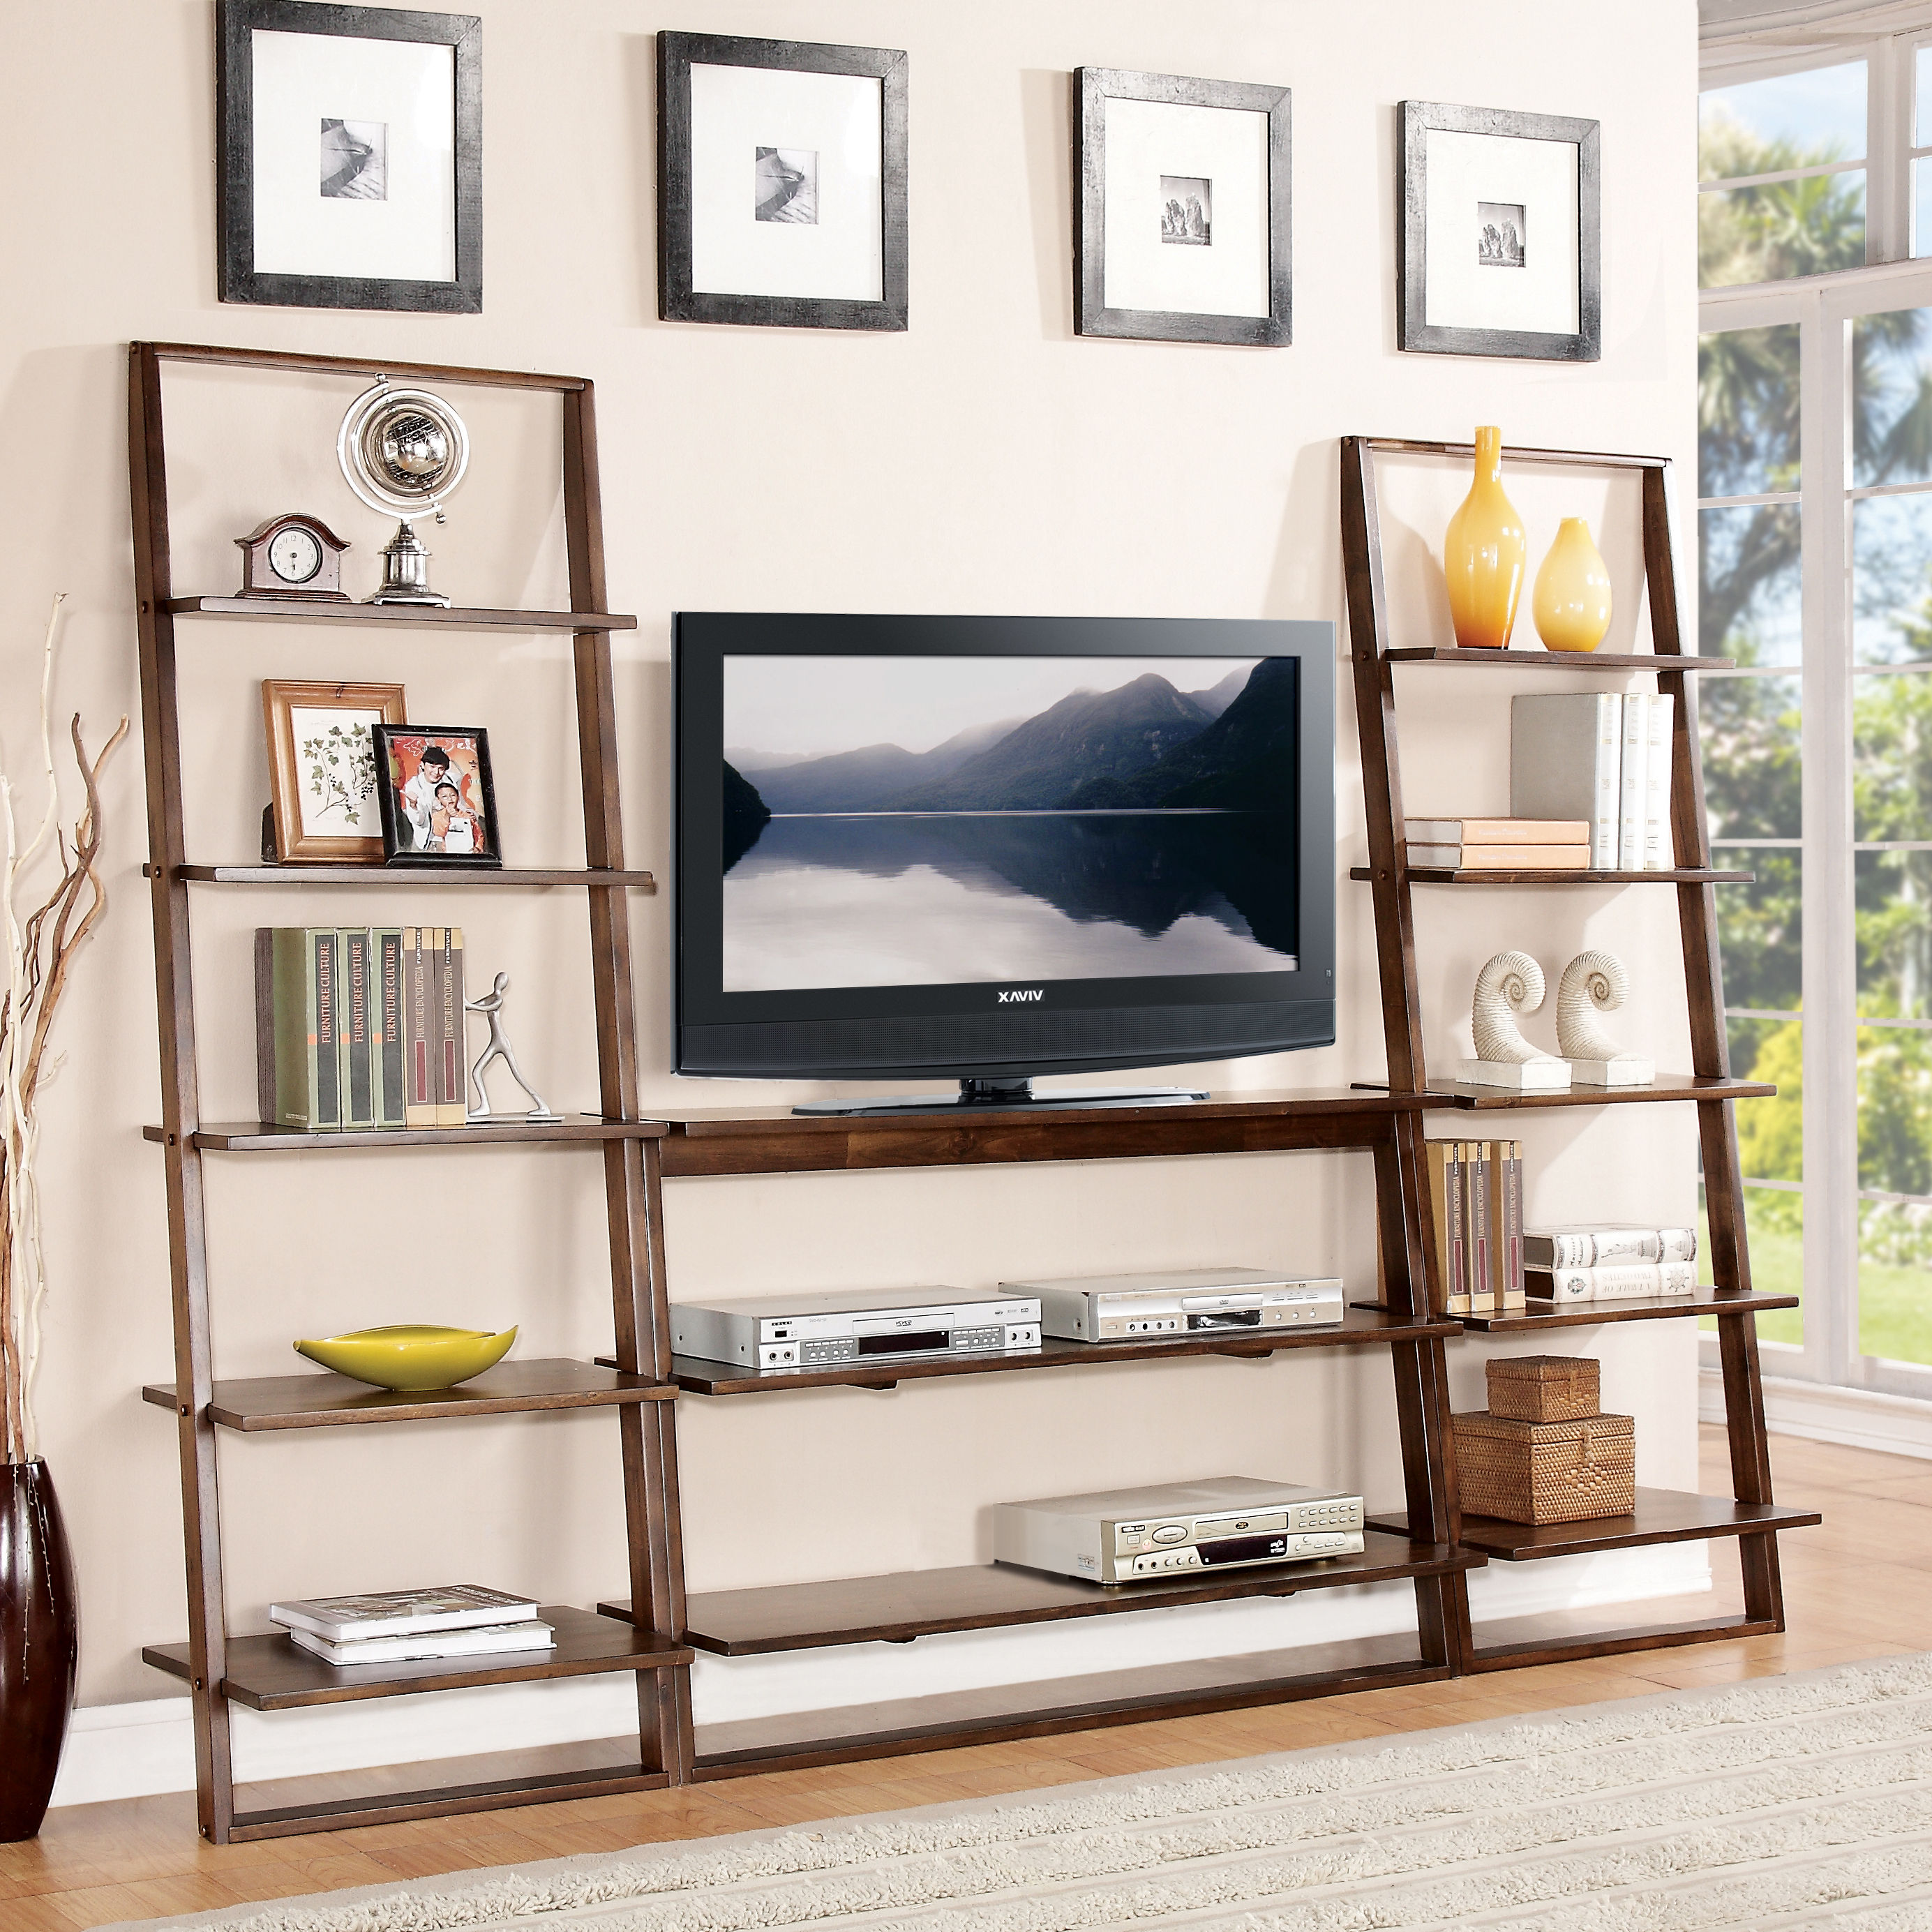 Image of: Decorative Leaning Bookcase